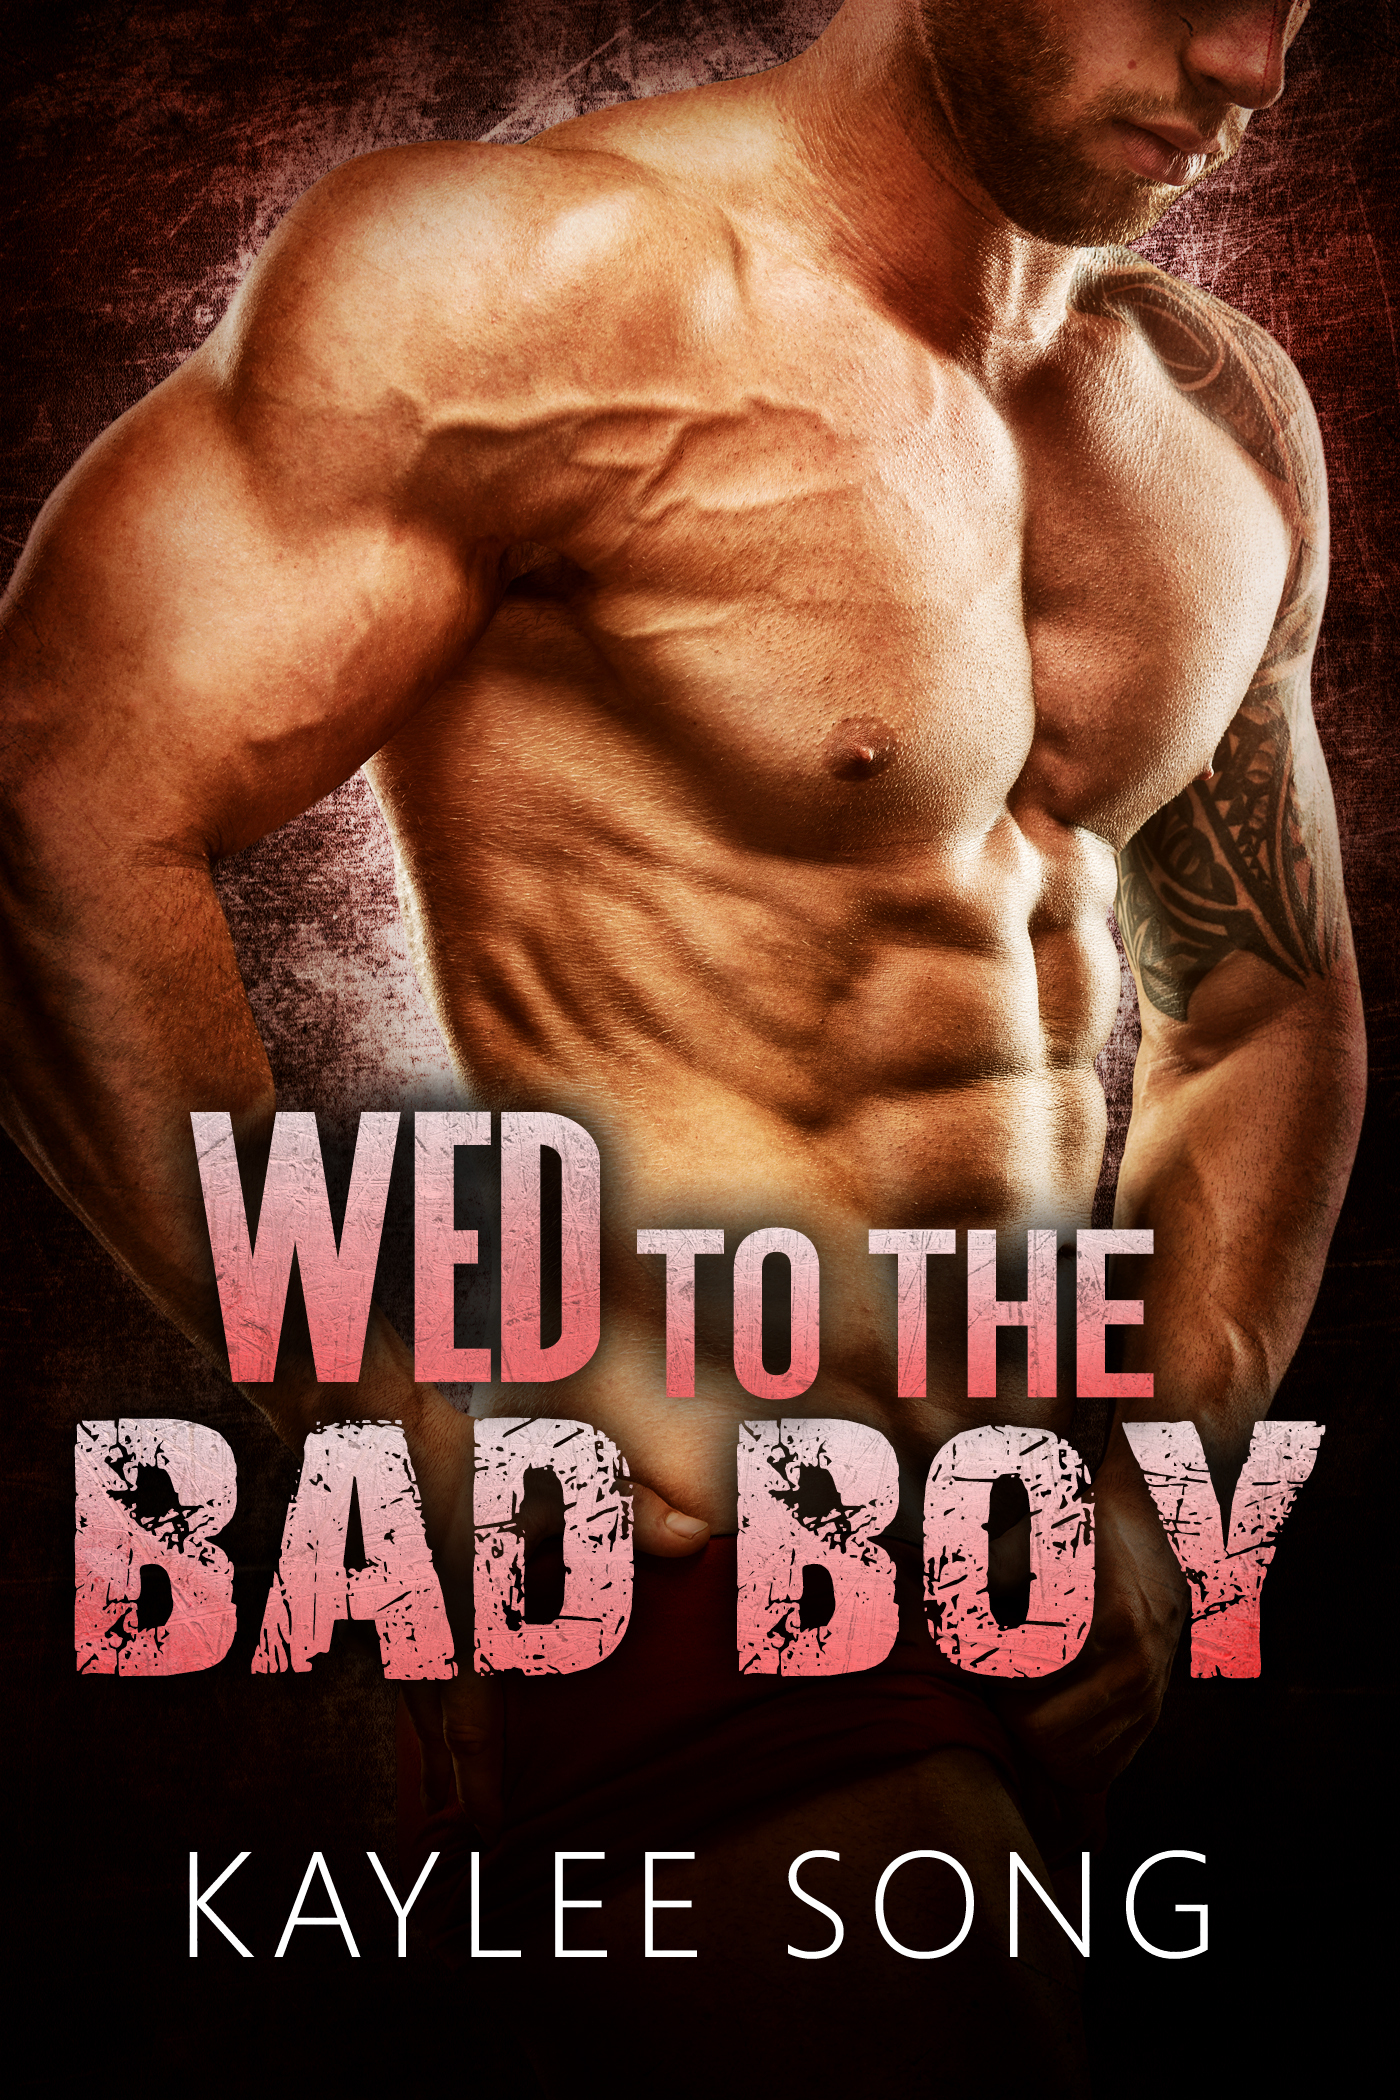 Wed to the Bad Boy Kaylee Song